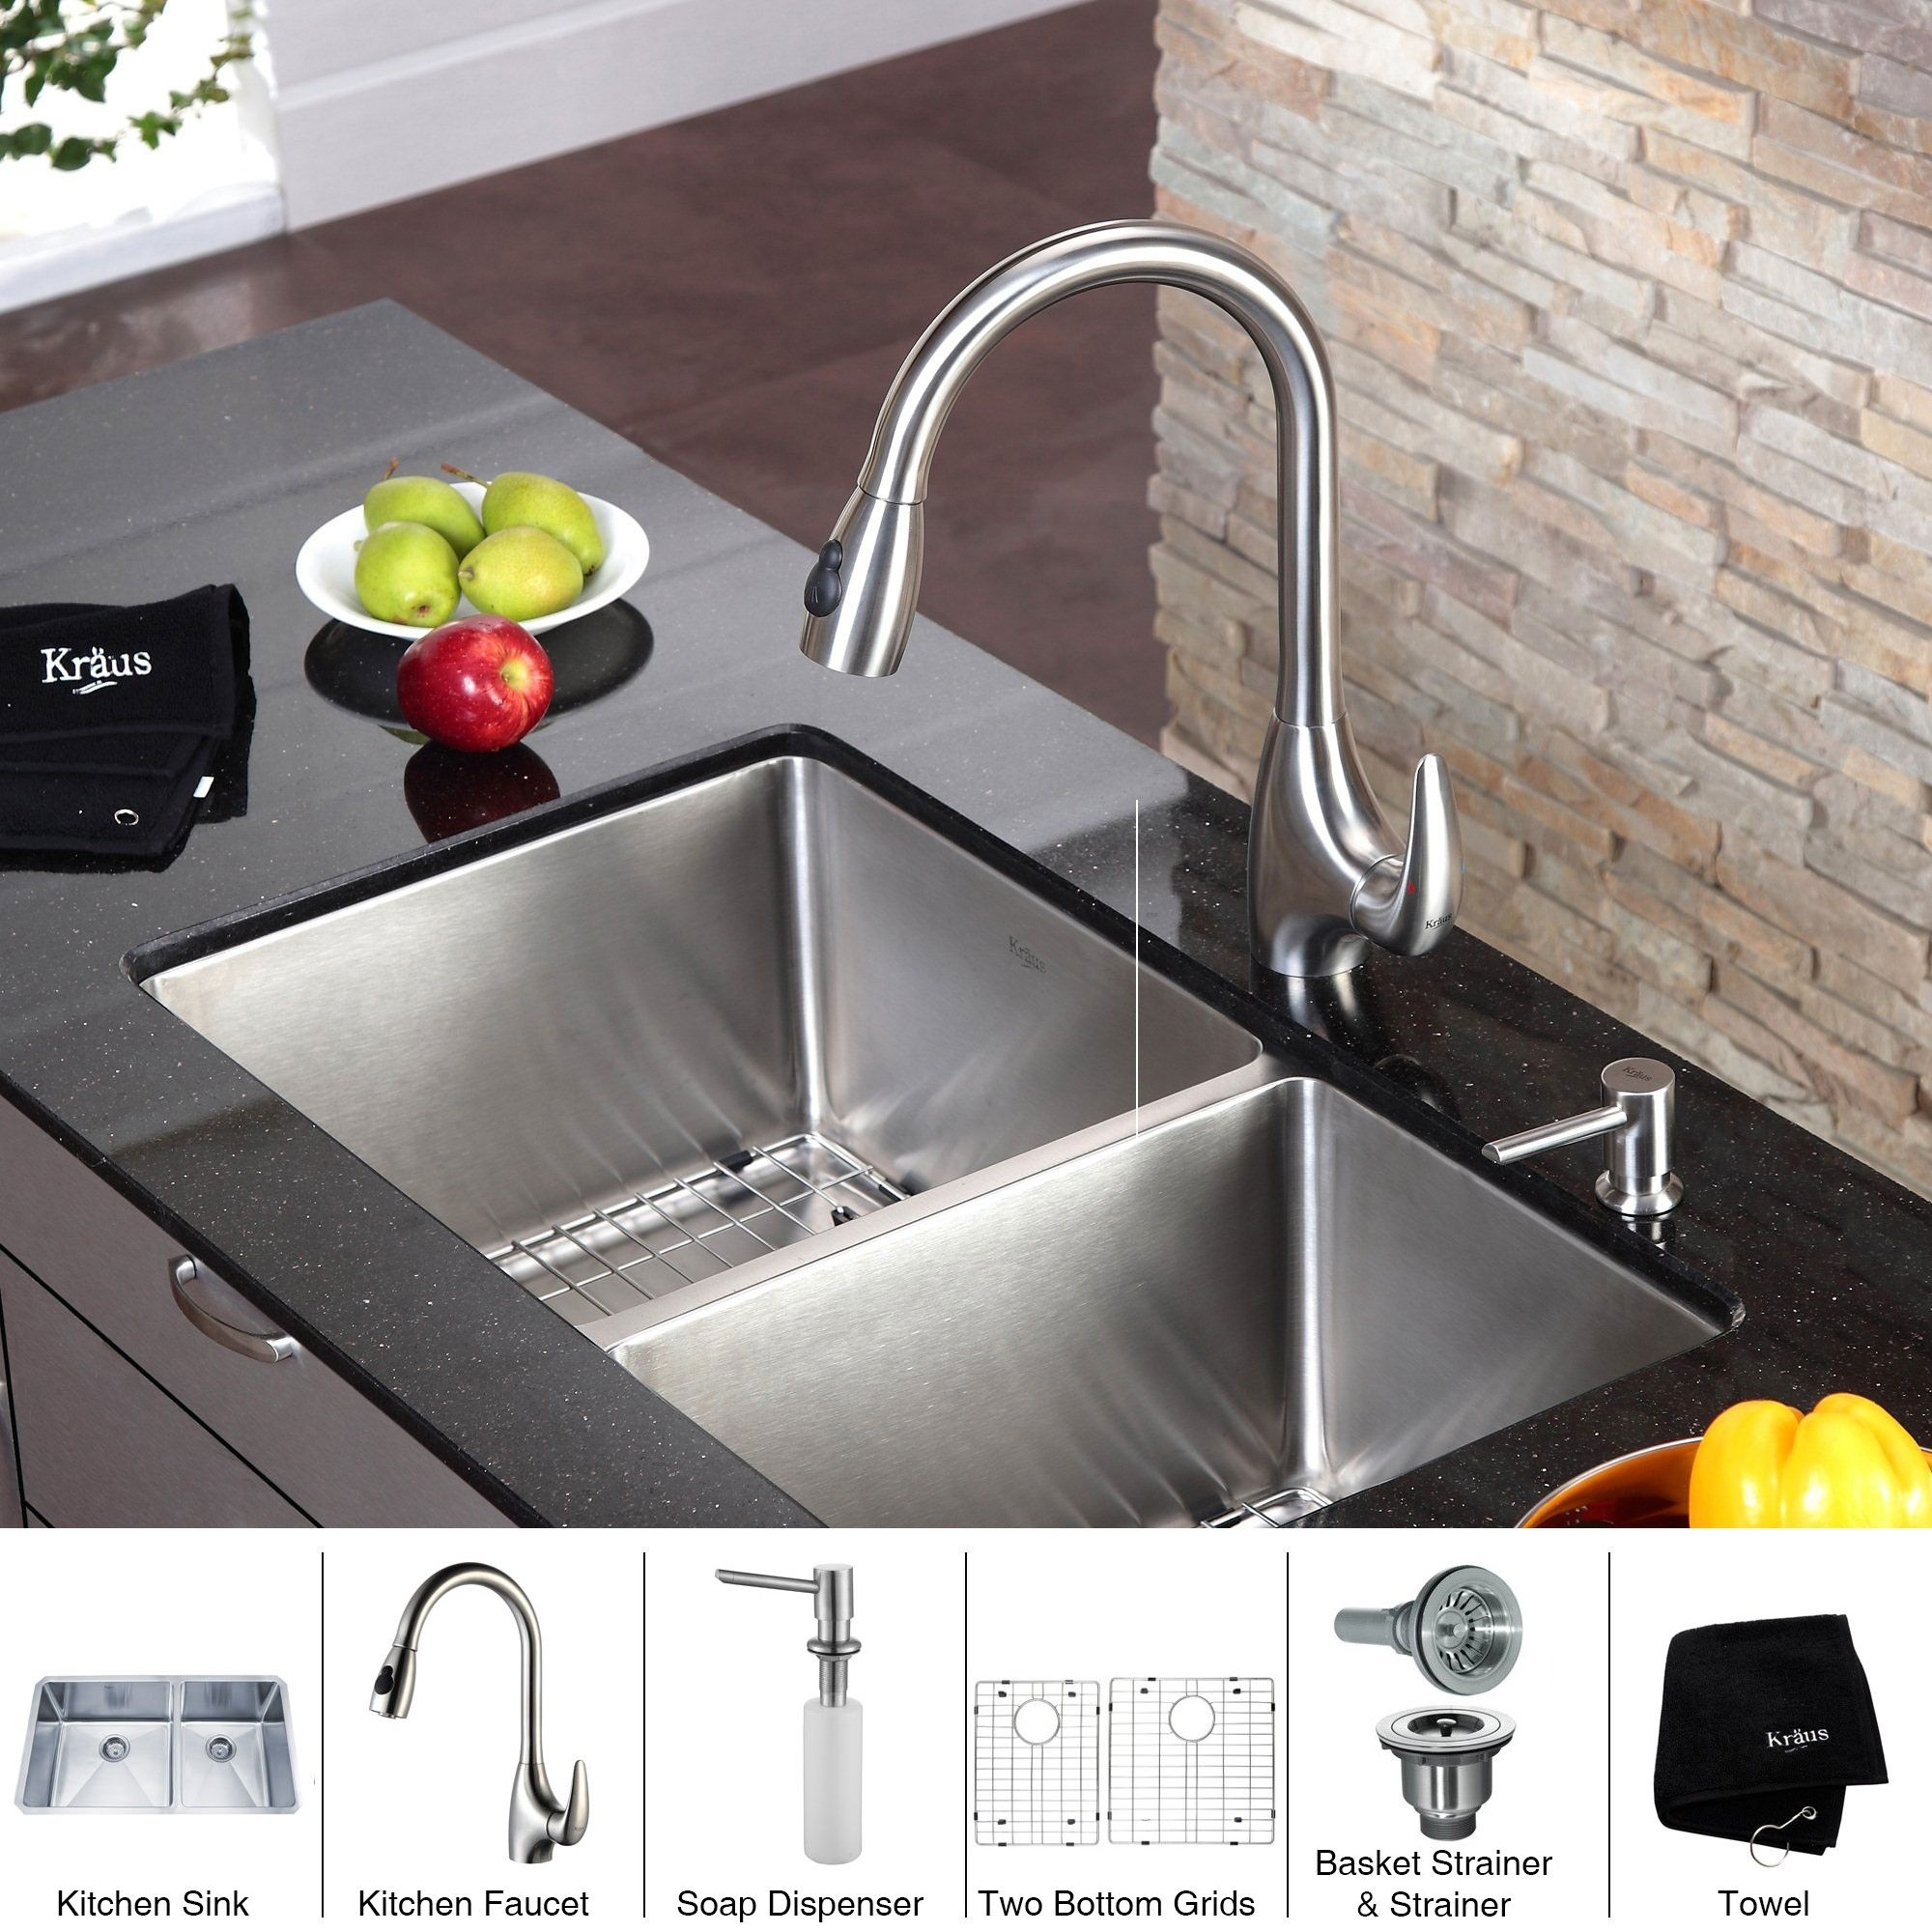 Kitchen Sink Faucets With Soap Dispenser - http://www ...